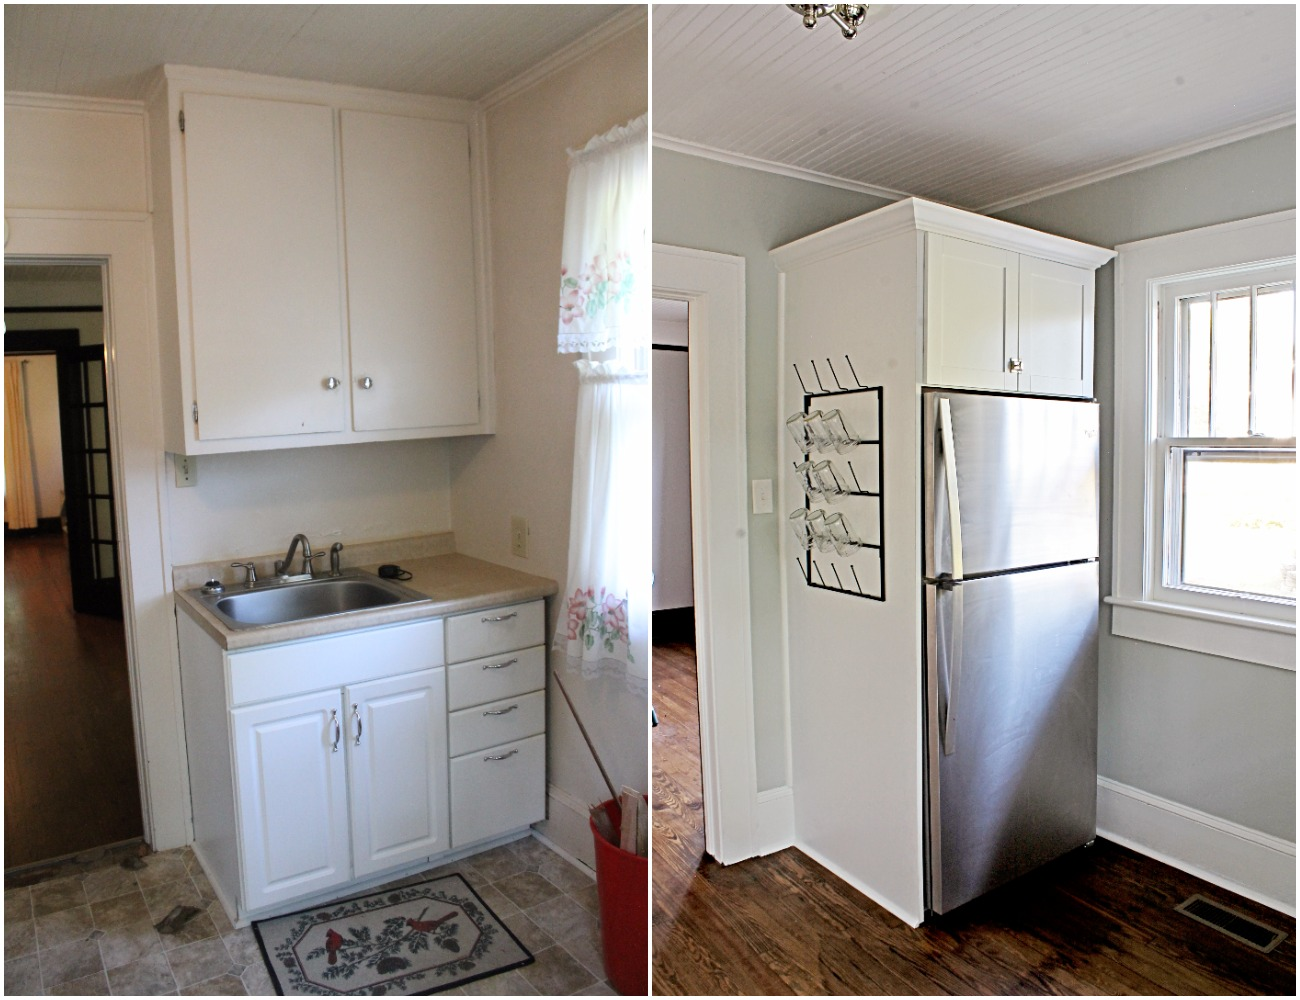 House Flipping Before and Afters - DIY BUDGET KITCHEN IDEAS WHITE SHAKER CABINETS (9).jpg